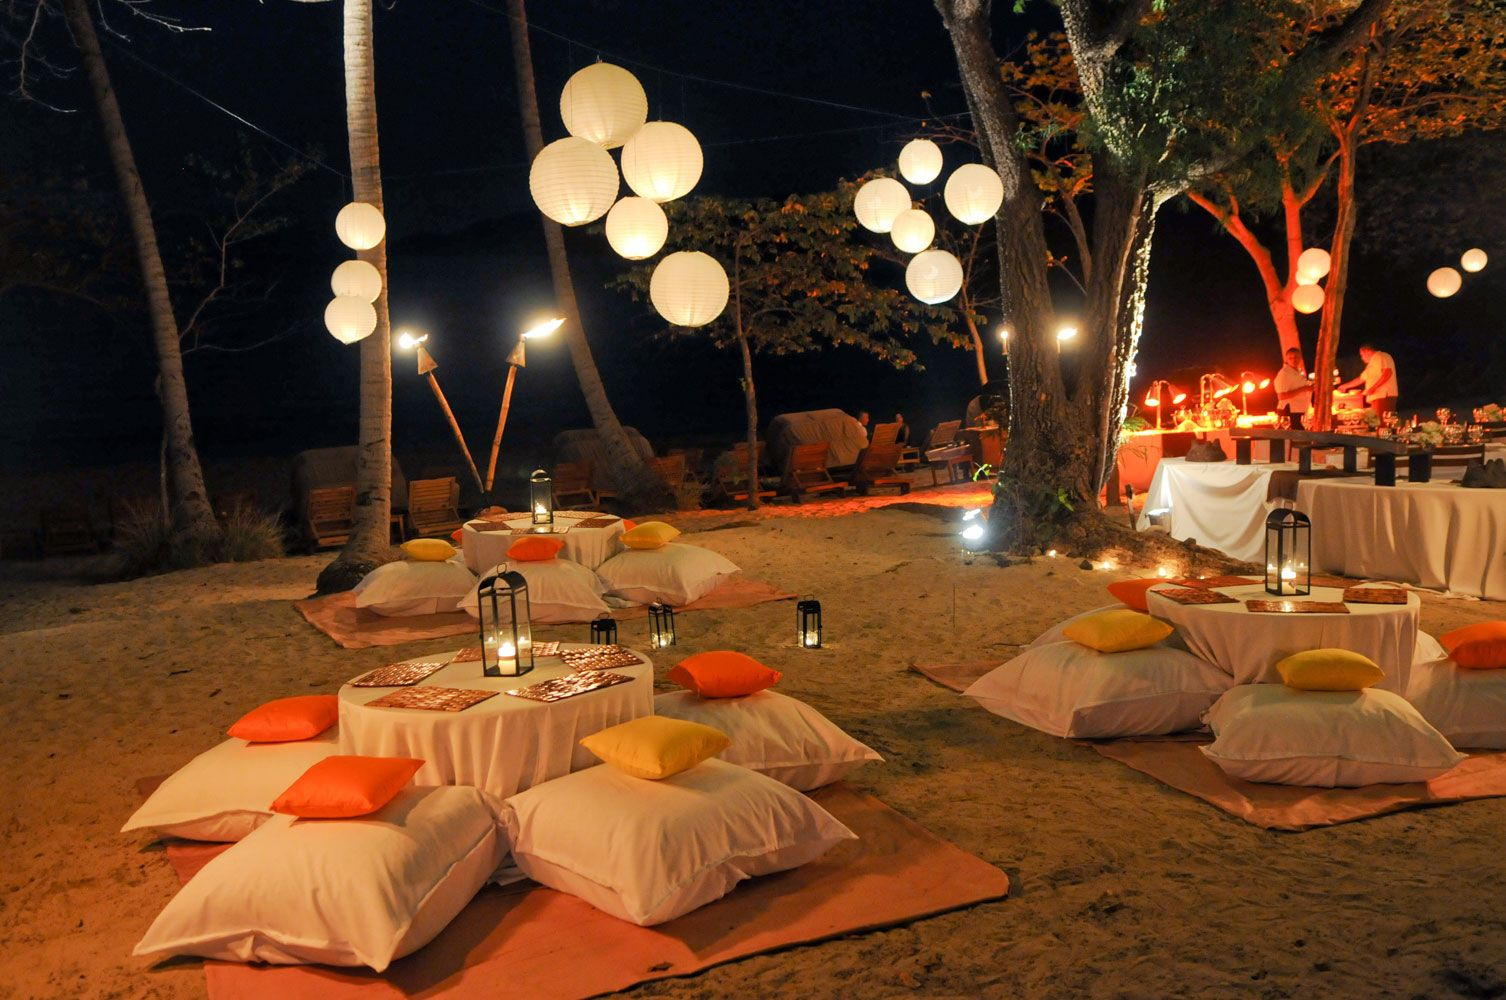 Rehaersal DInner party set up | Tent decorations ...